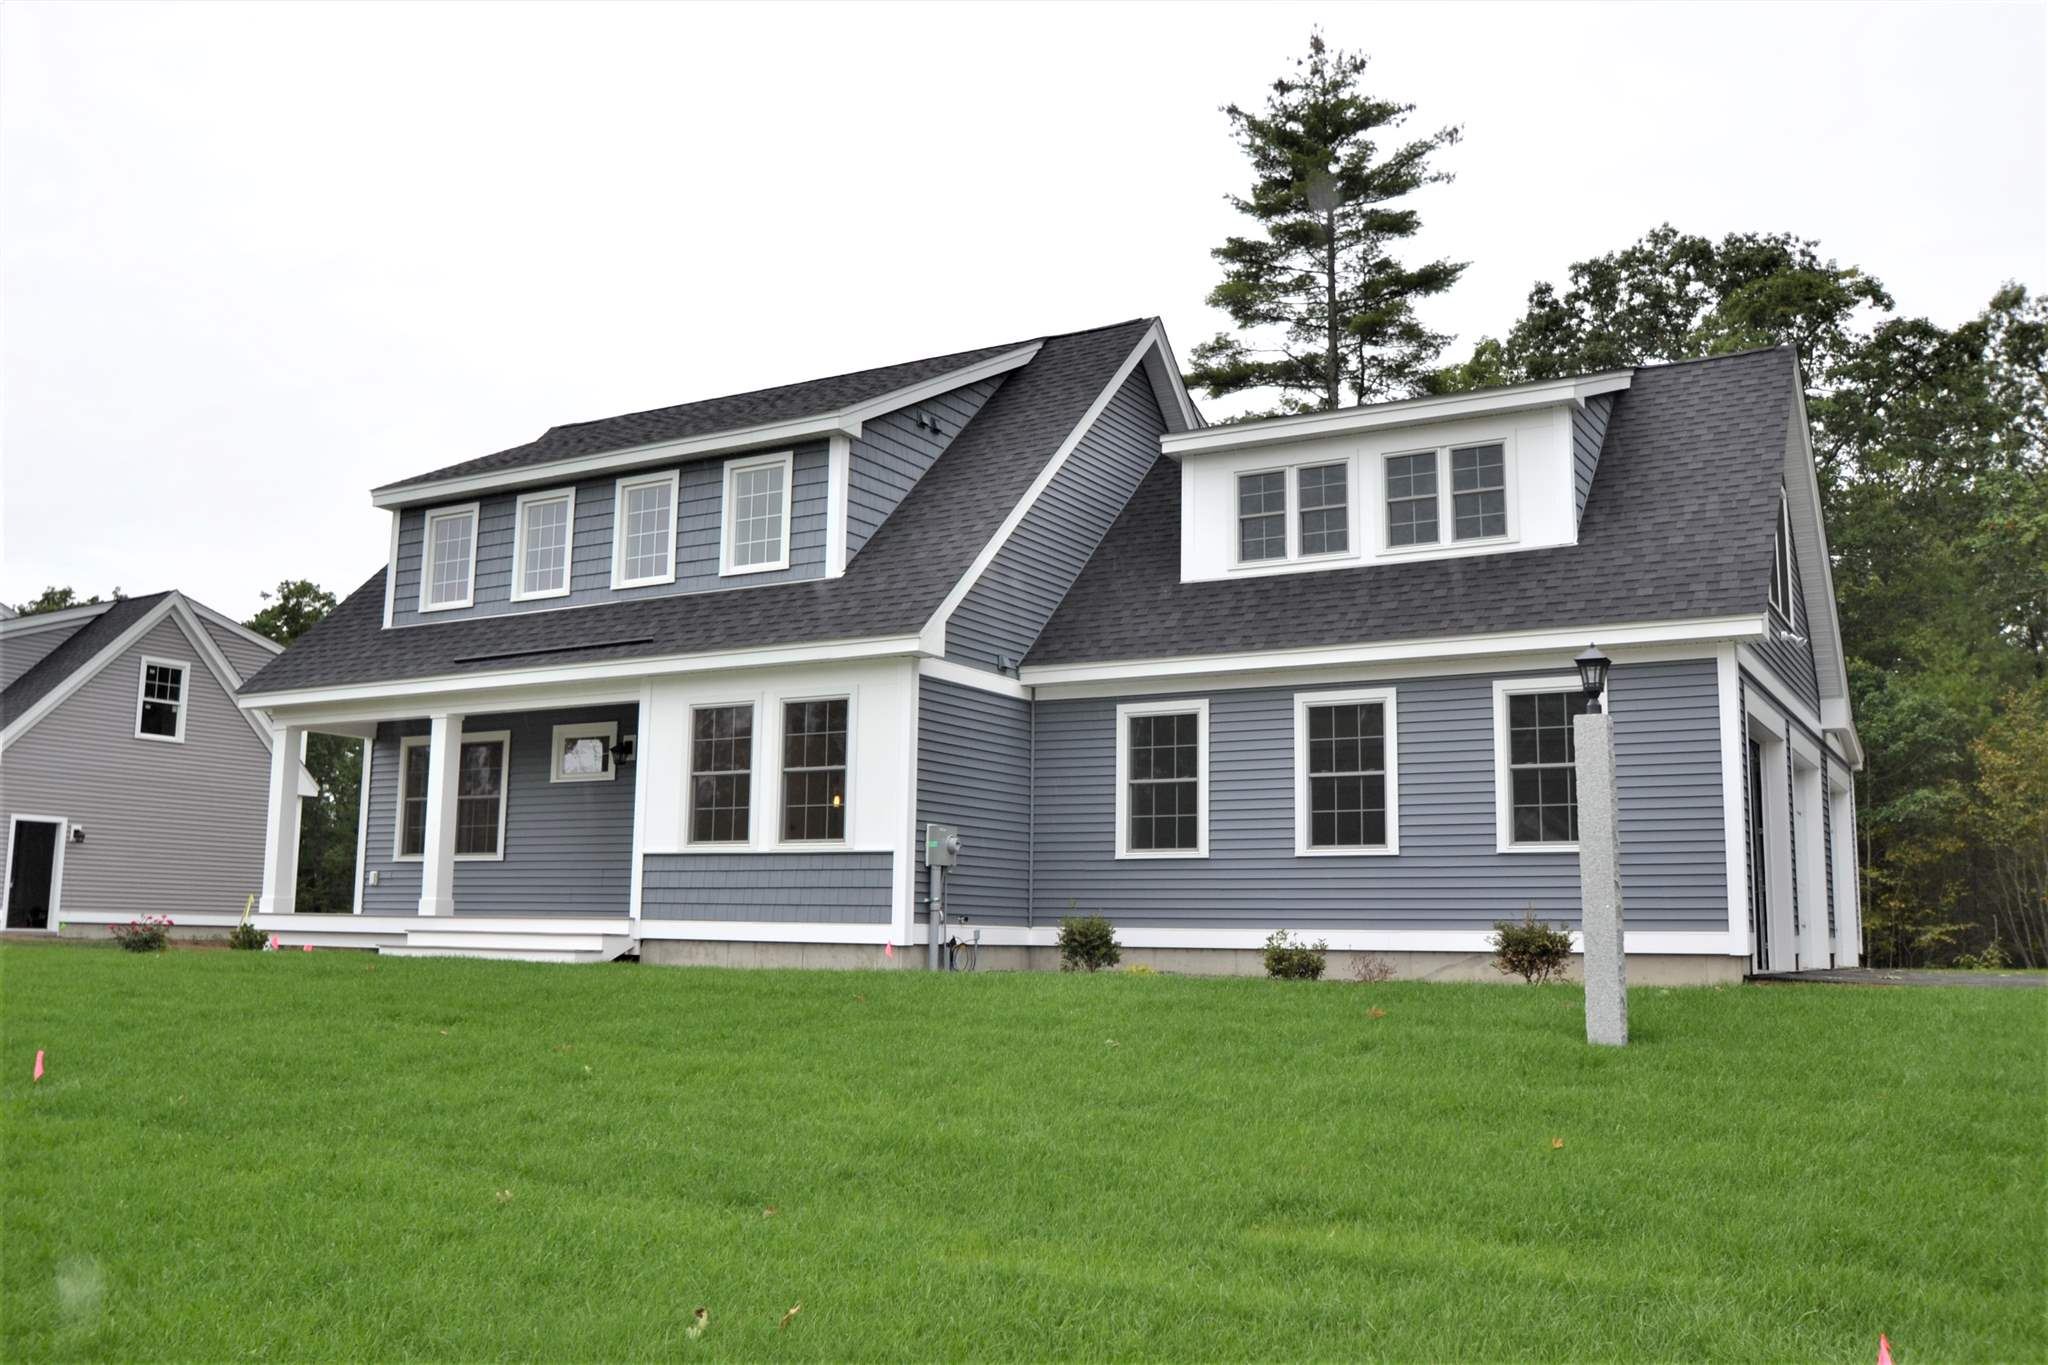 Photo of 40 Clover Lane Londonderry NH 03053